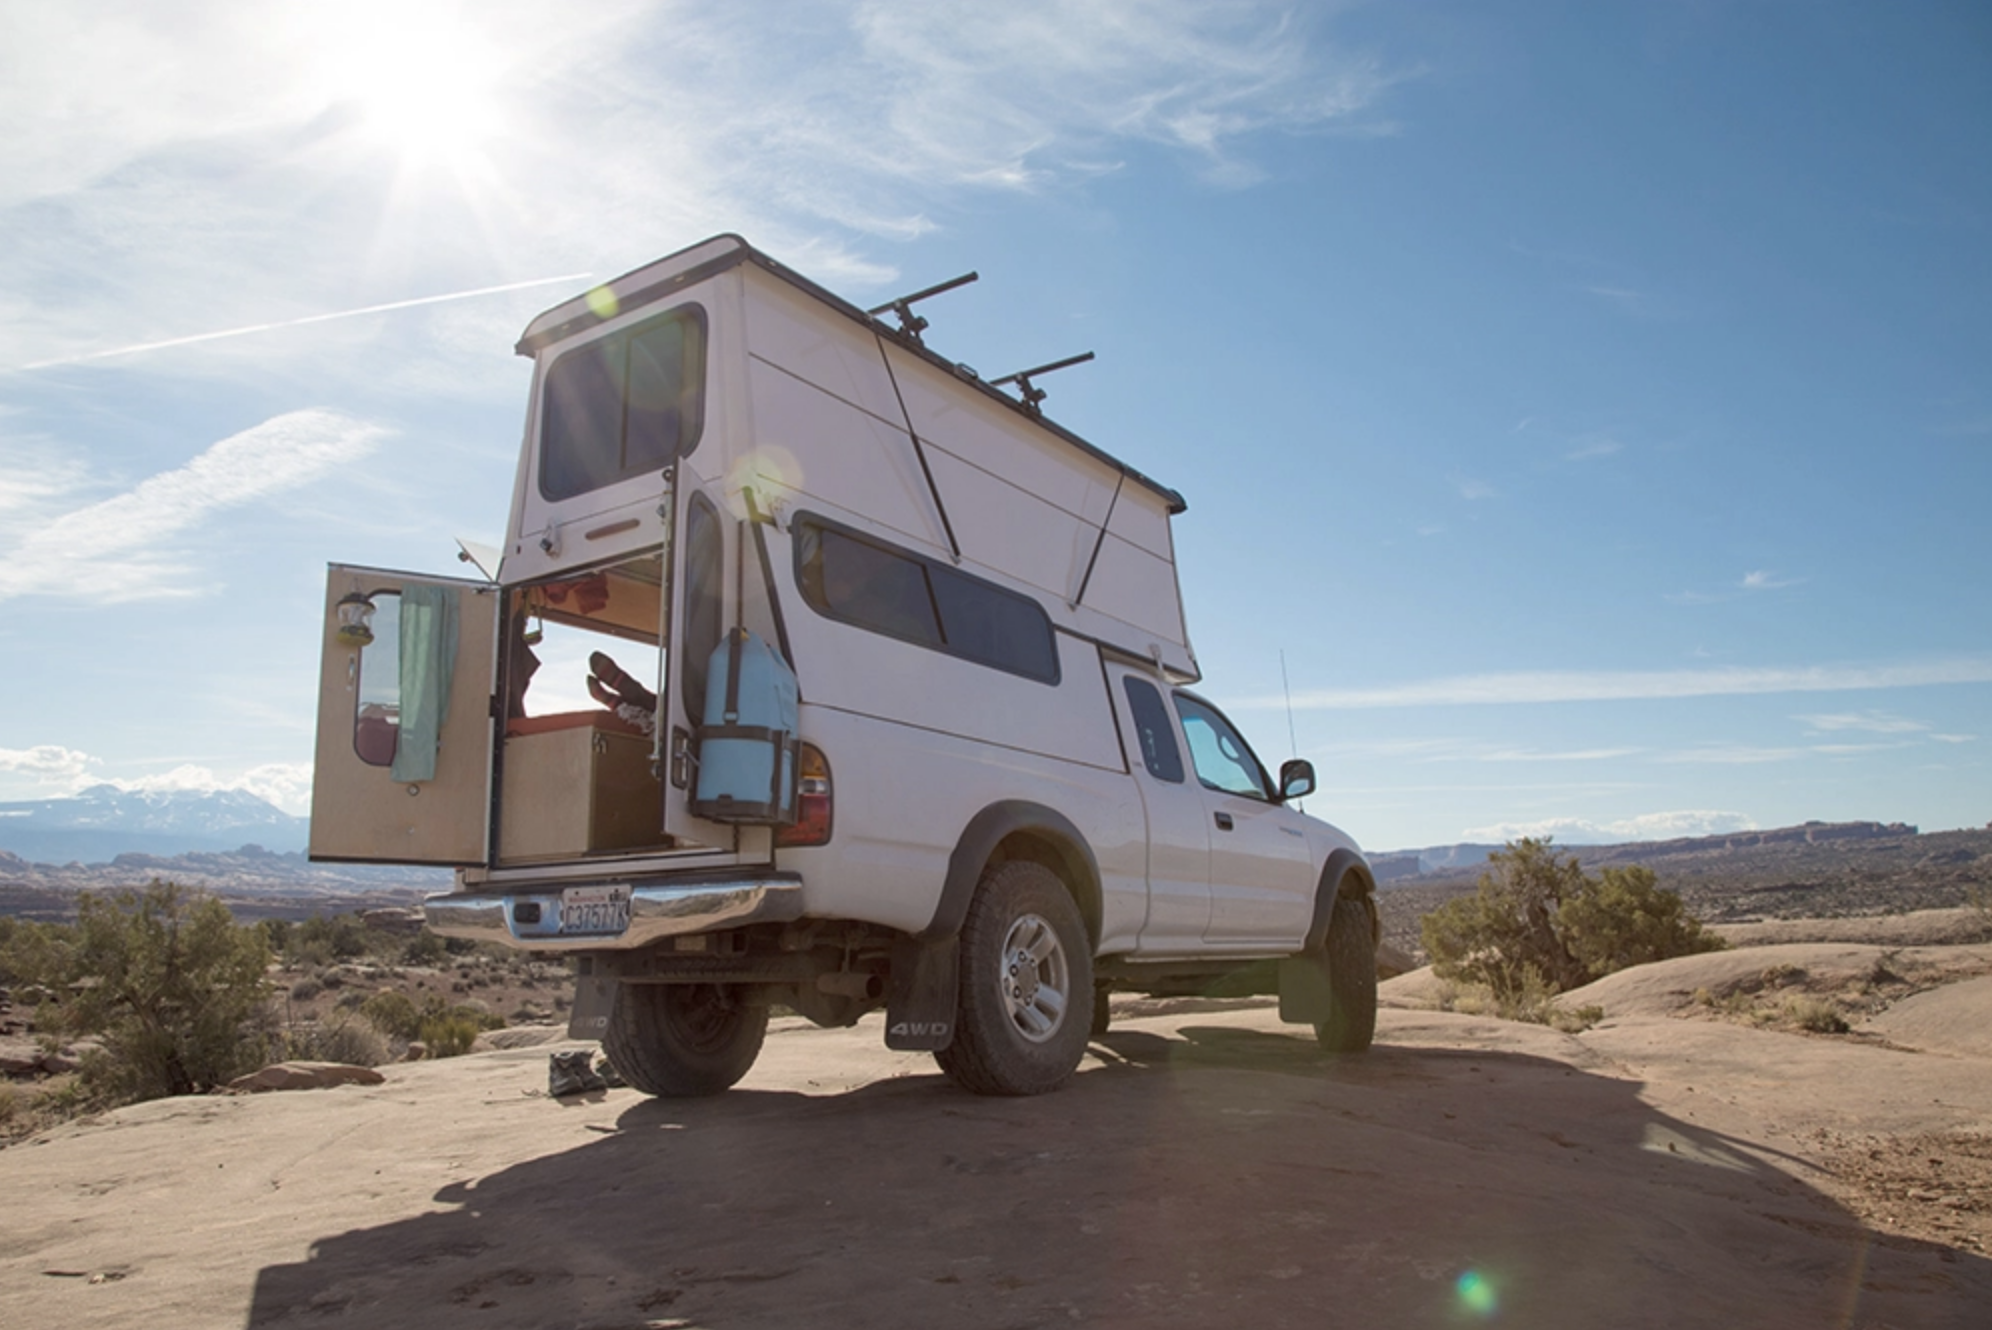 Overland Kitted — Overland Kitted Four Wheel Drive